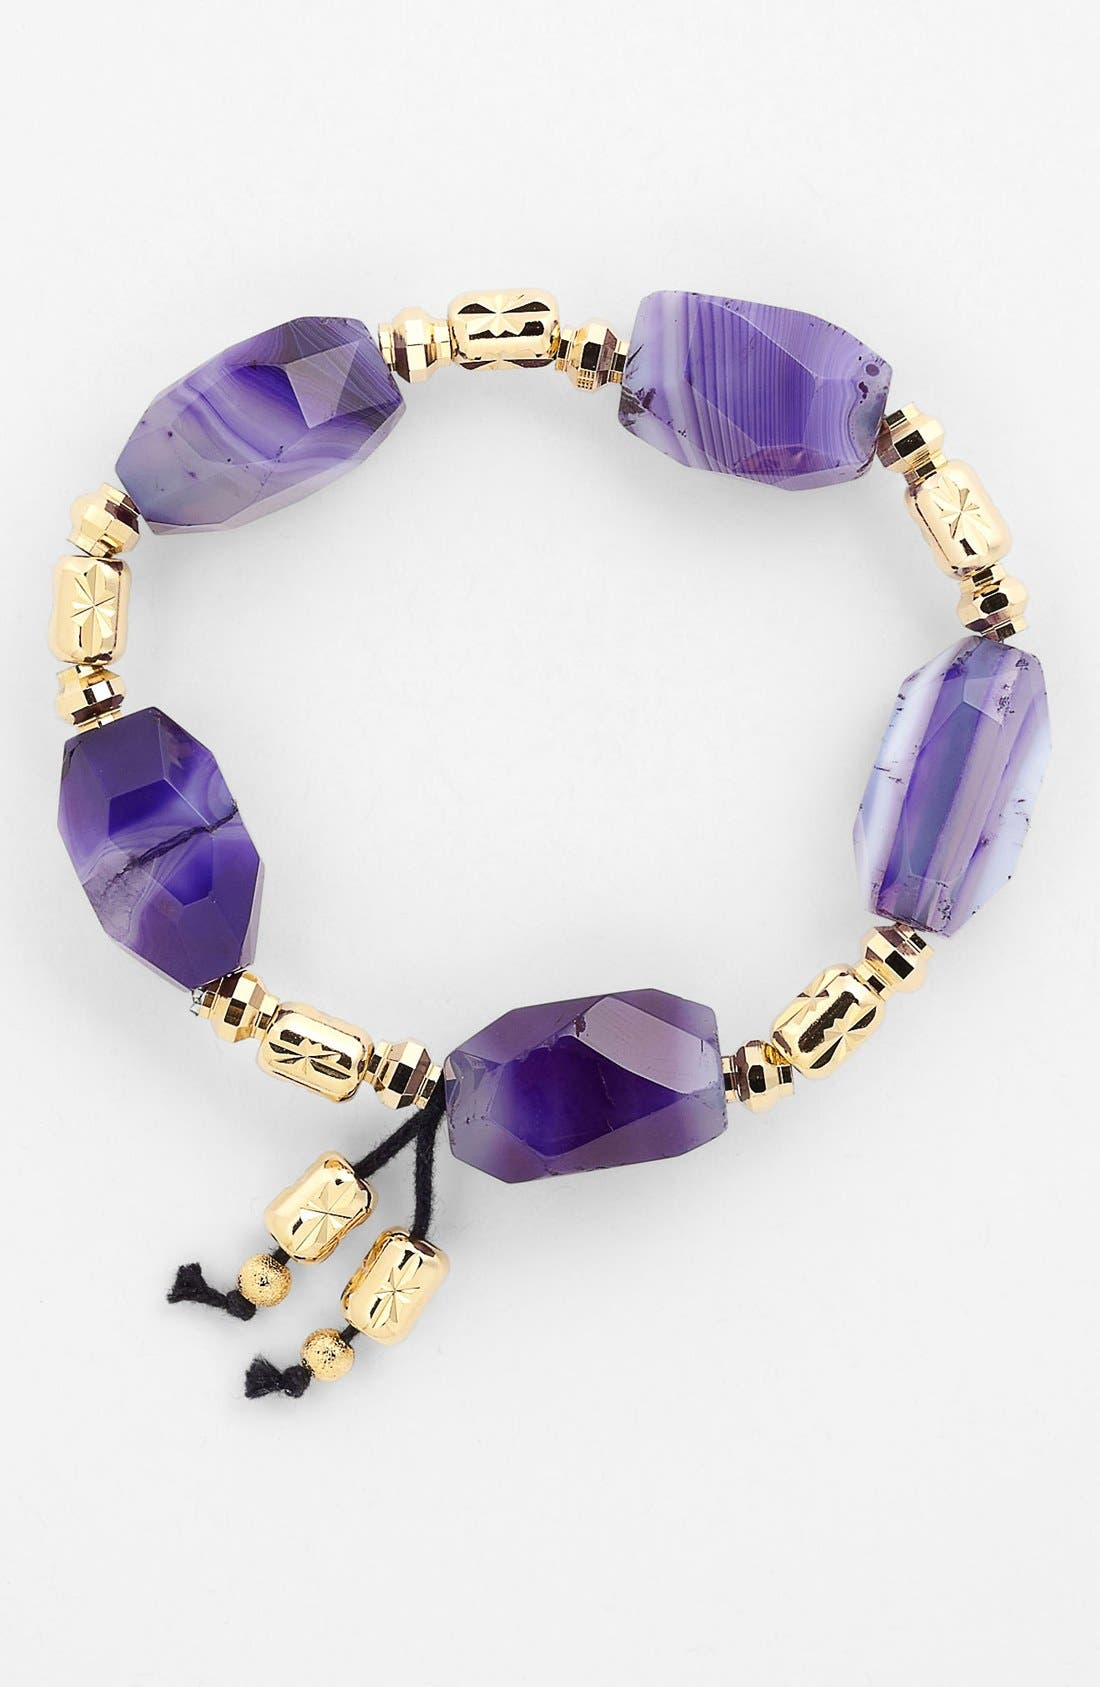 Alternate Image 1 Selected - Nordstrom 'Grotto' Bead Stretch Bracelet